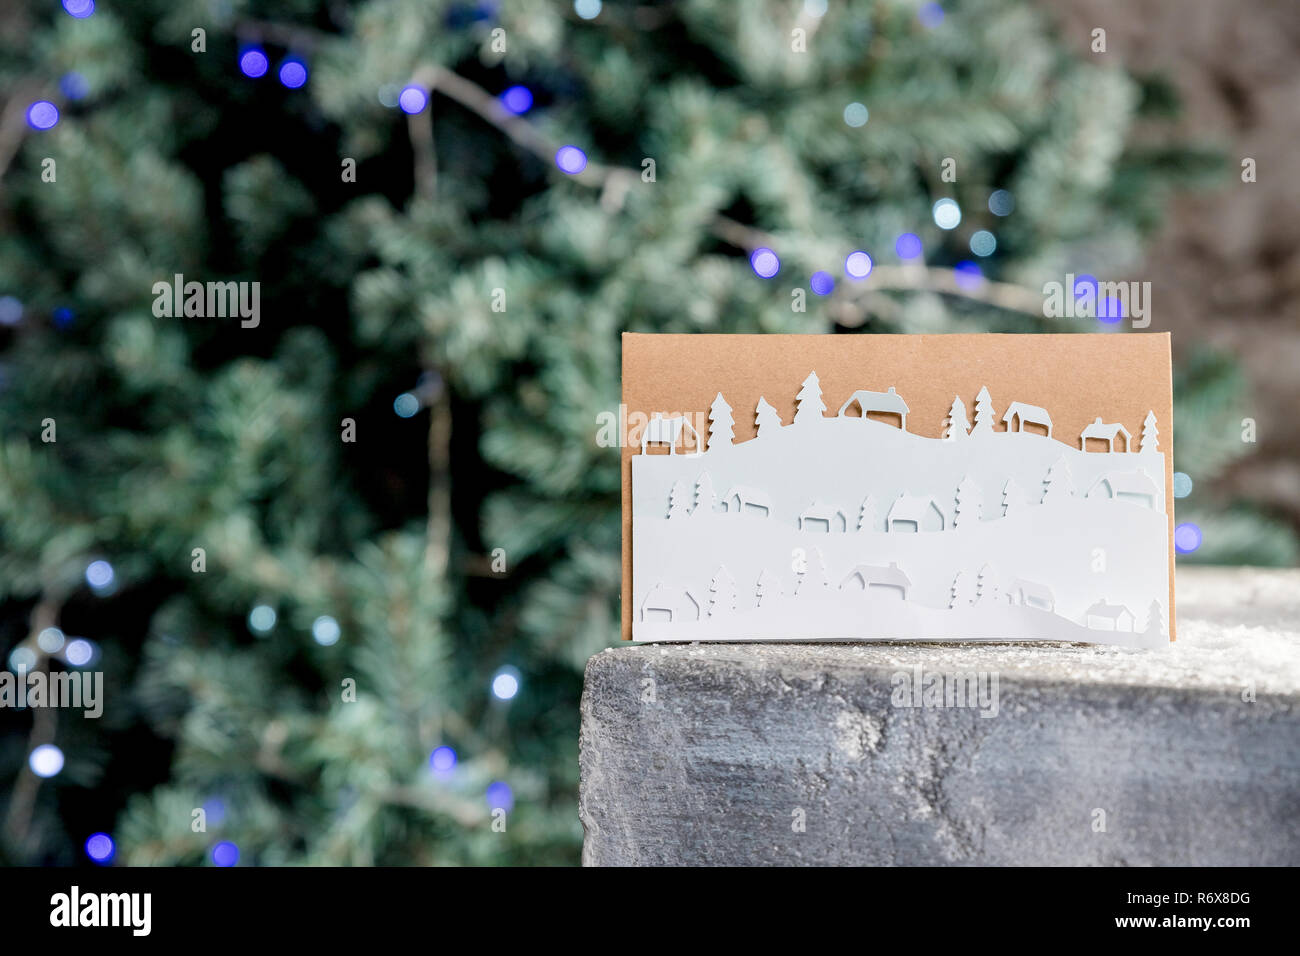 Christmas card with winter landscape.snowflakes,Christmas and Happy new year decoration. DIY concept. Snowy landscape, winter coming. Minimal paper art style.Christmas tree with blue garland lights. - Stock Image